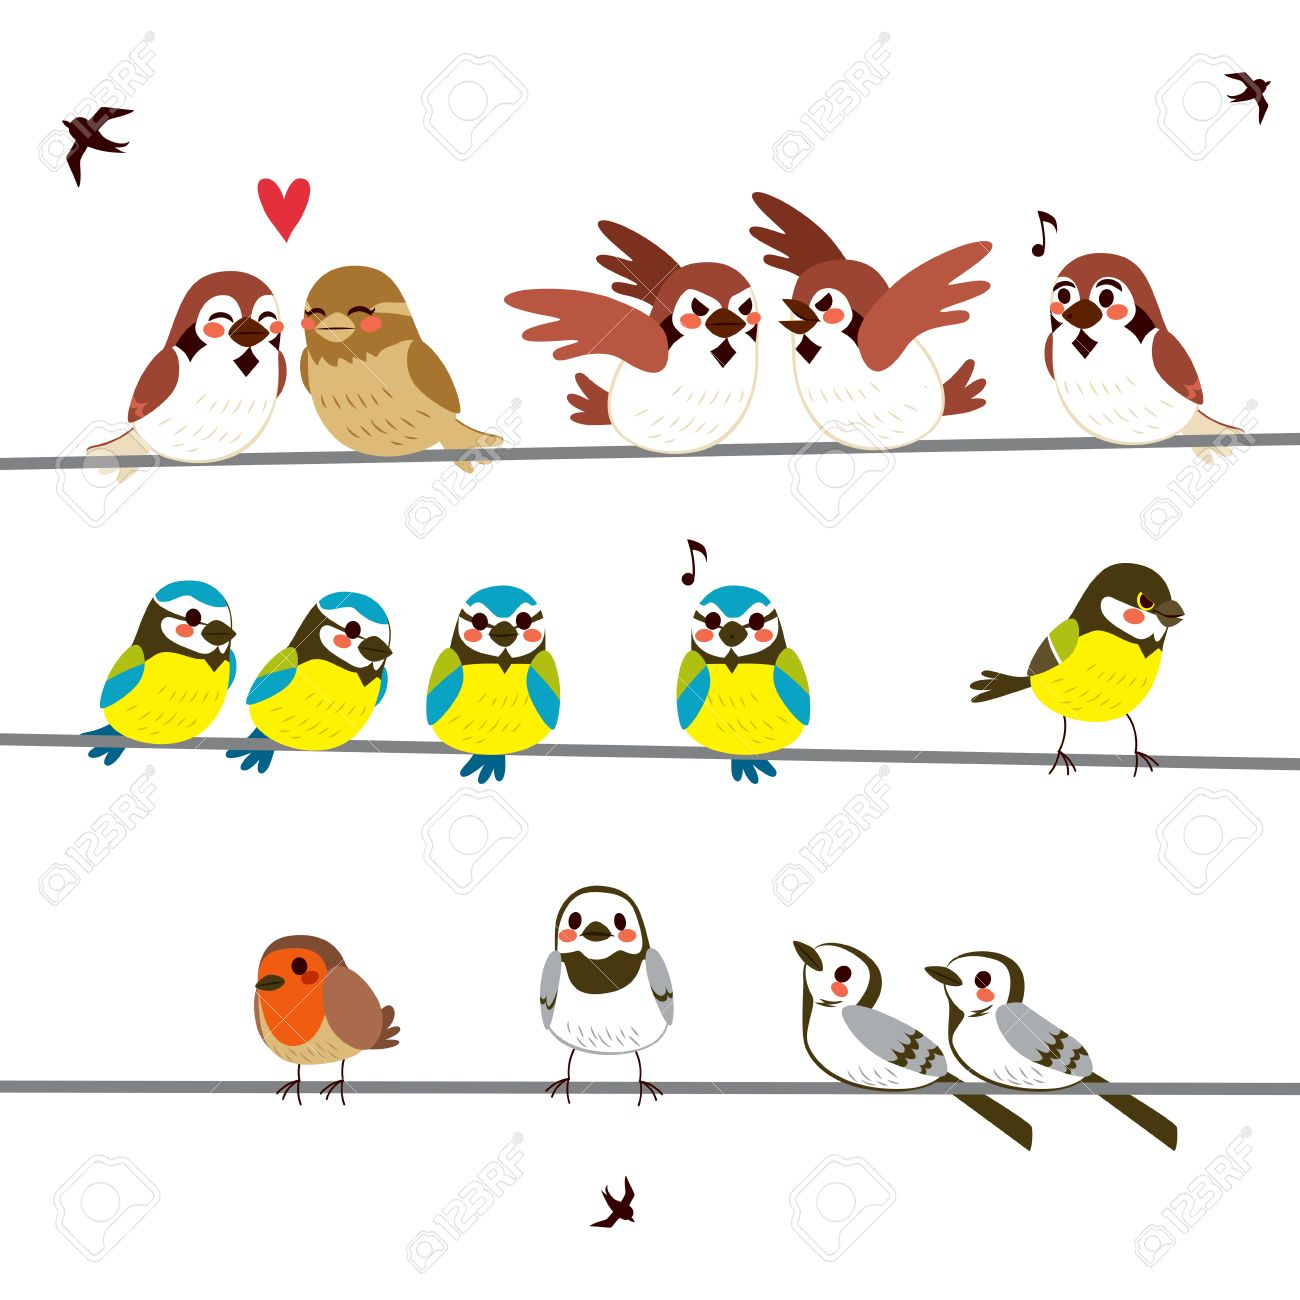 Wires Full Of Funny Birds Of Different Kinds Doing Different ...